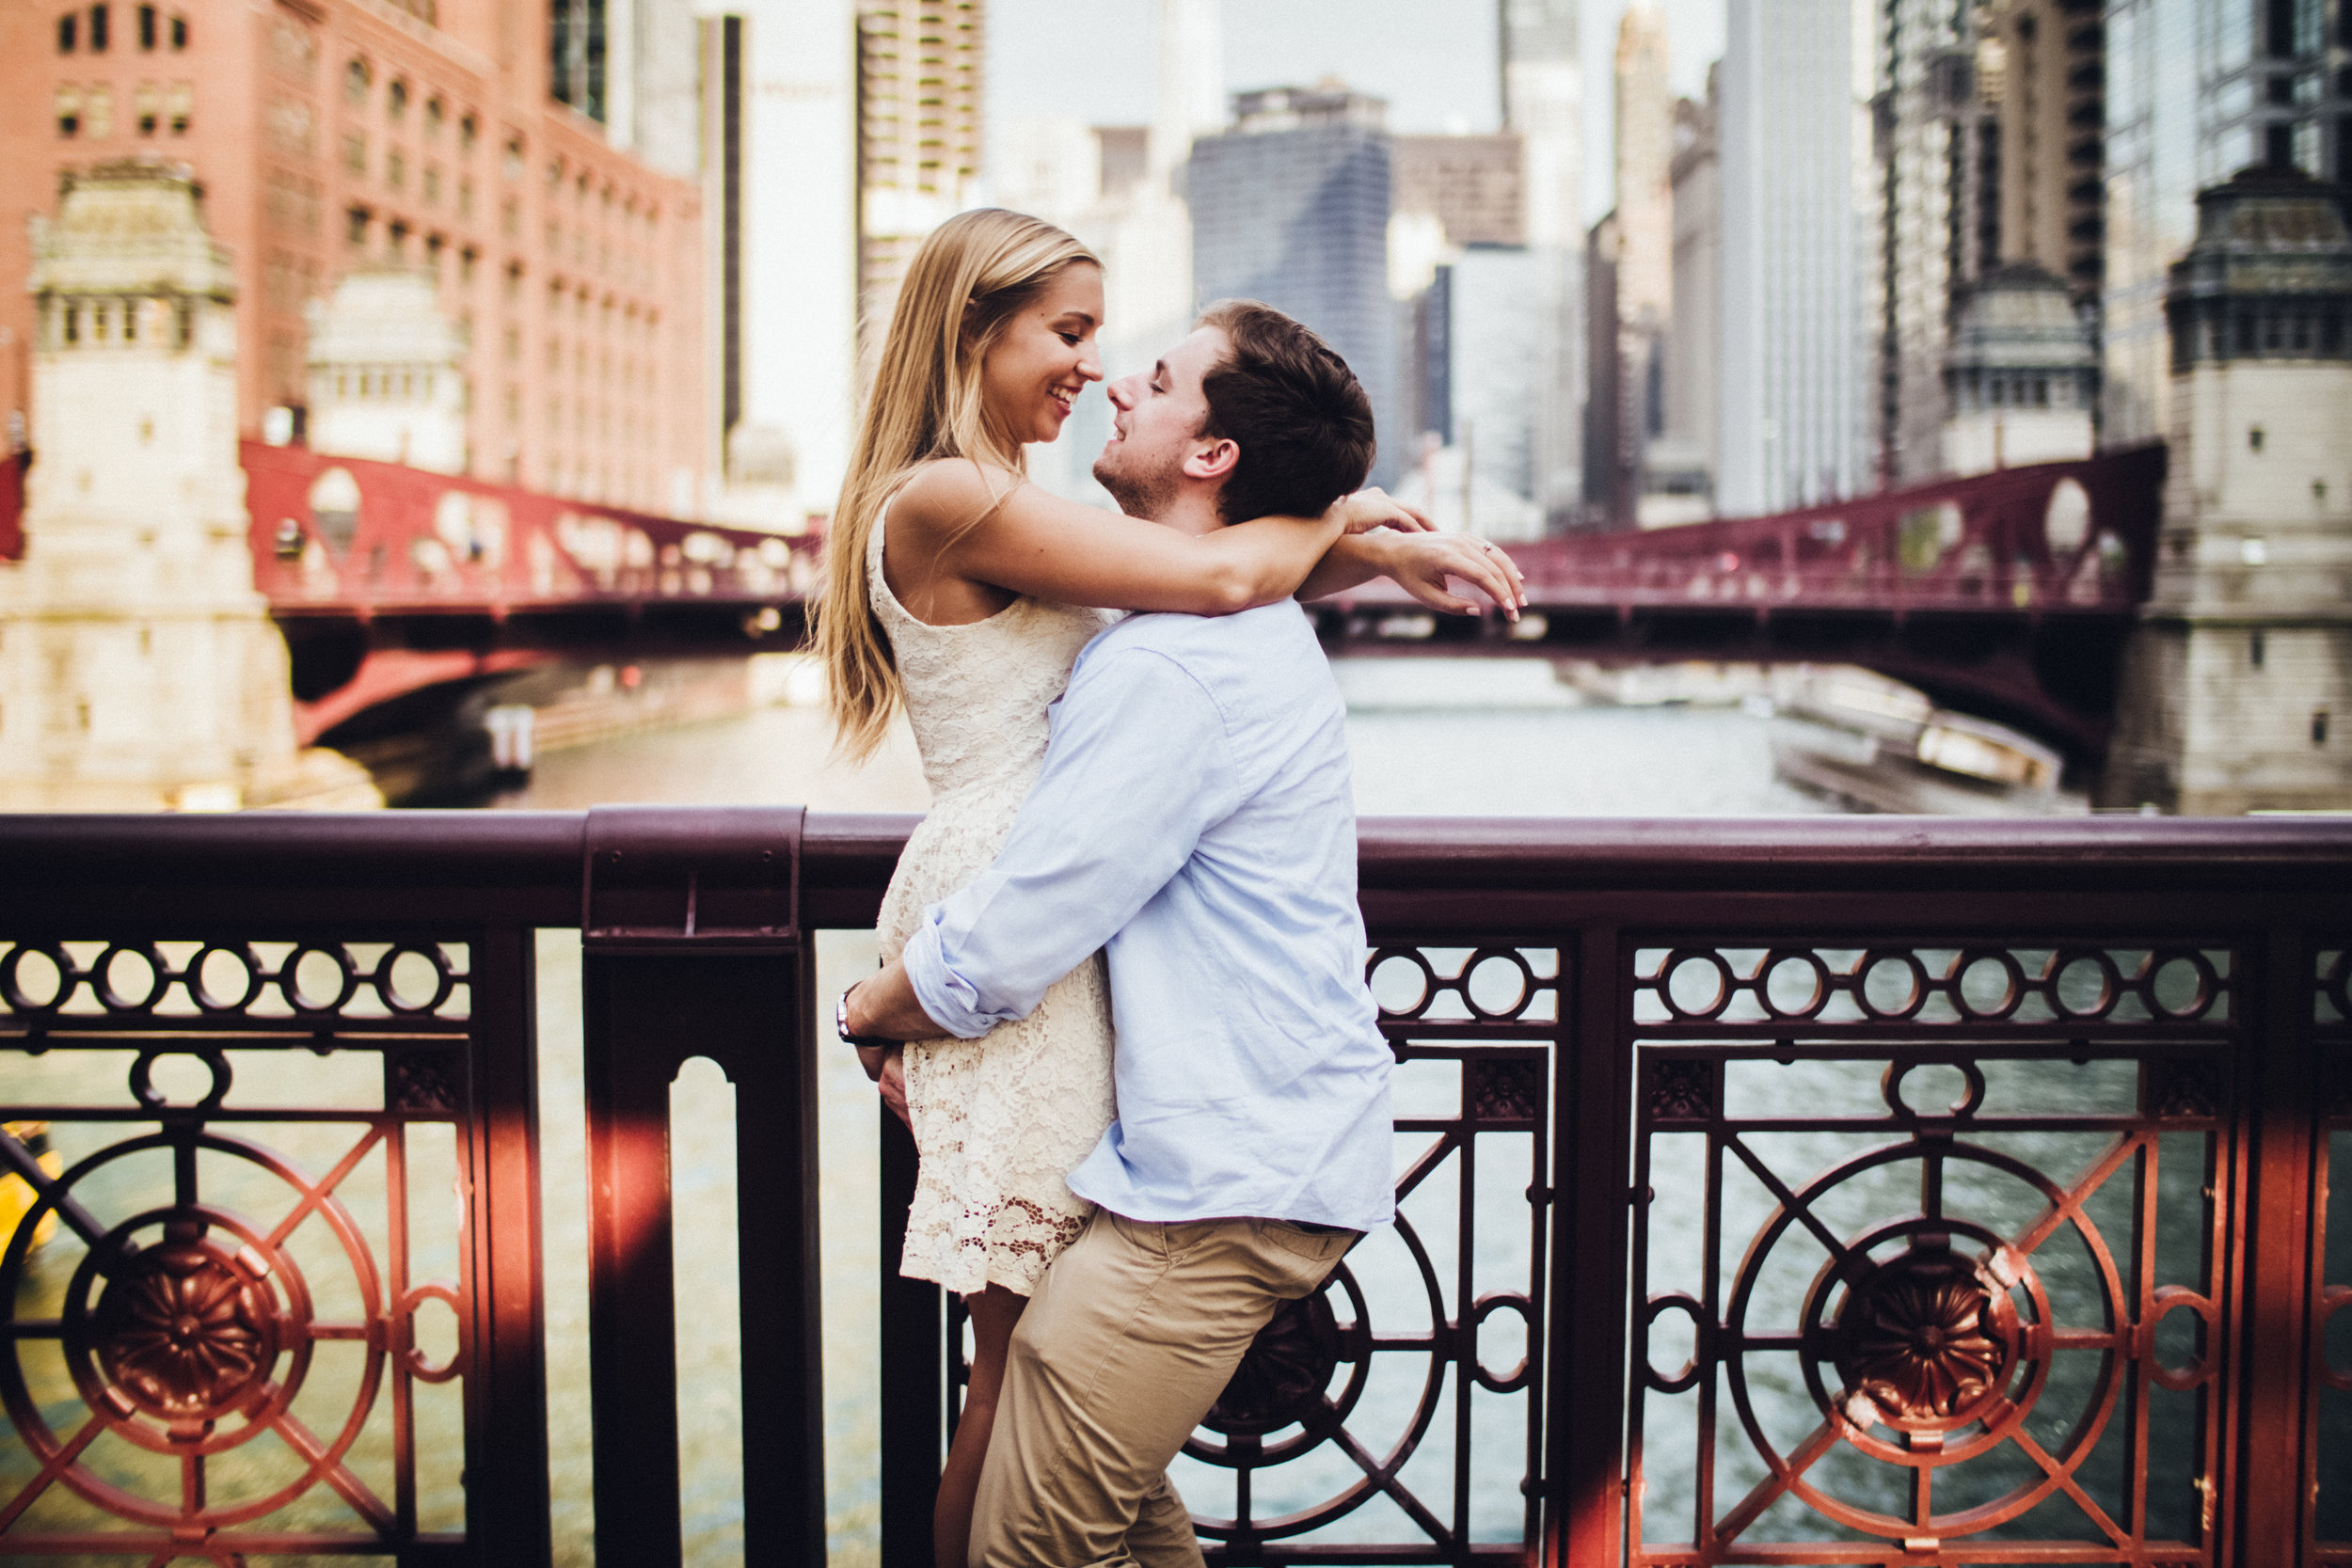 shadow-shine-pictures-engagement-photos-wedding-photographers-photographer-photography-destination-chicago